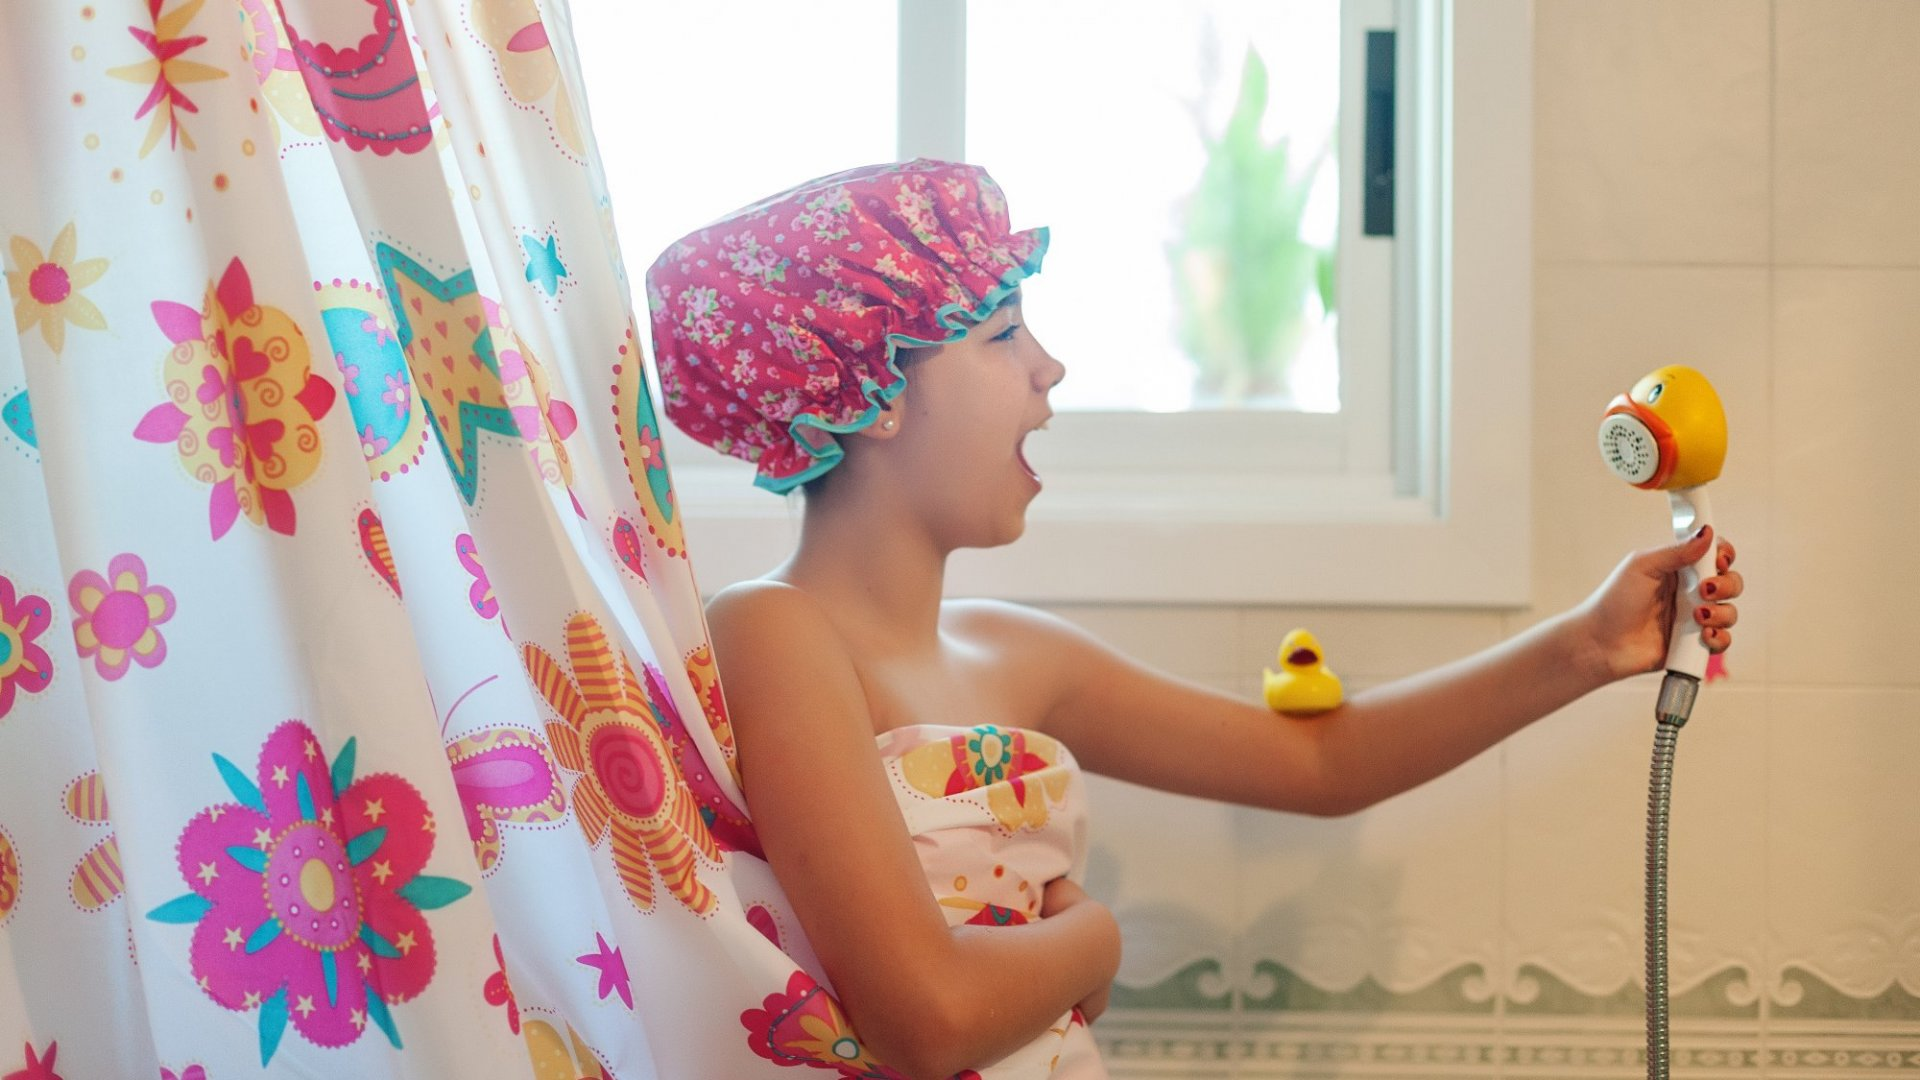 Need a New Idea? Study Says Go Take a Shower